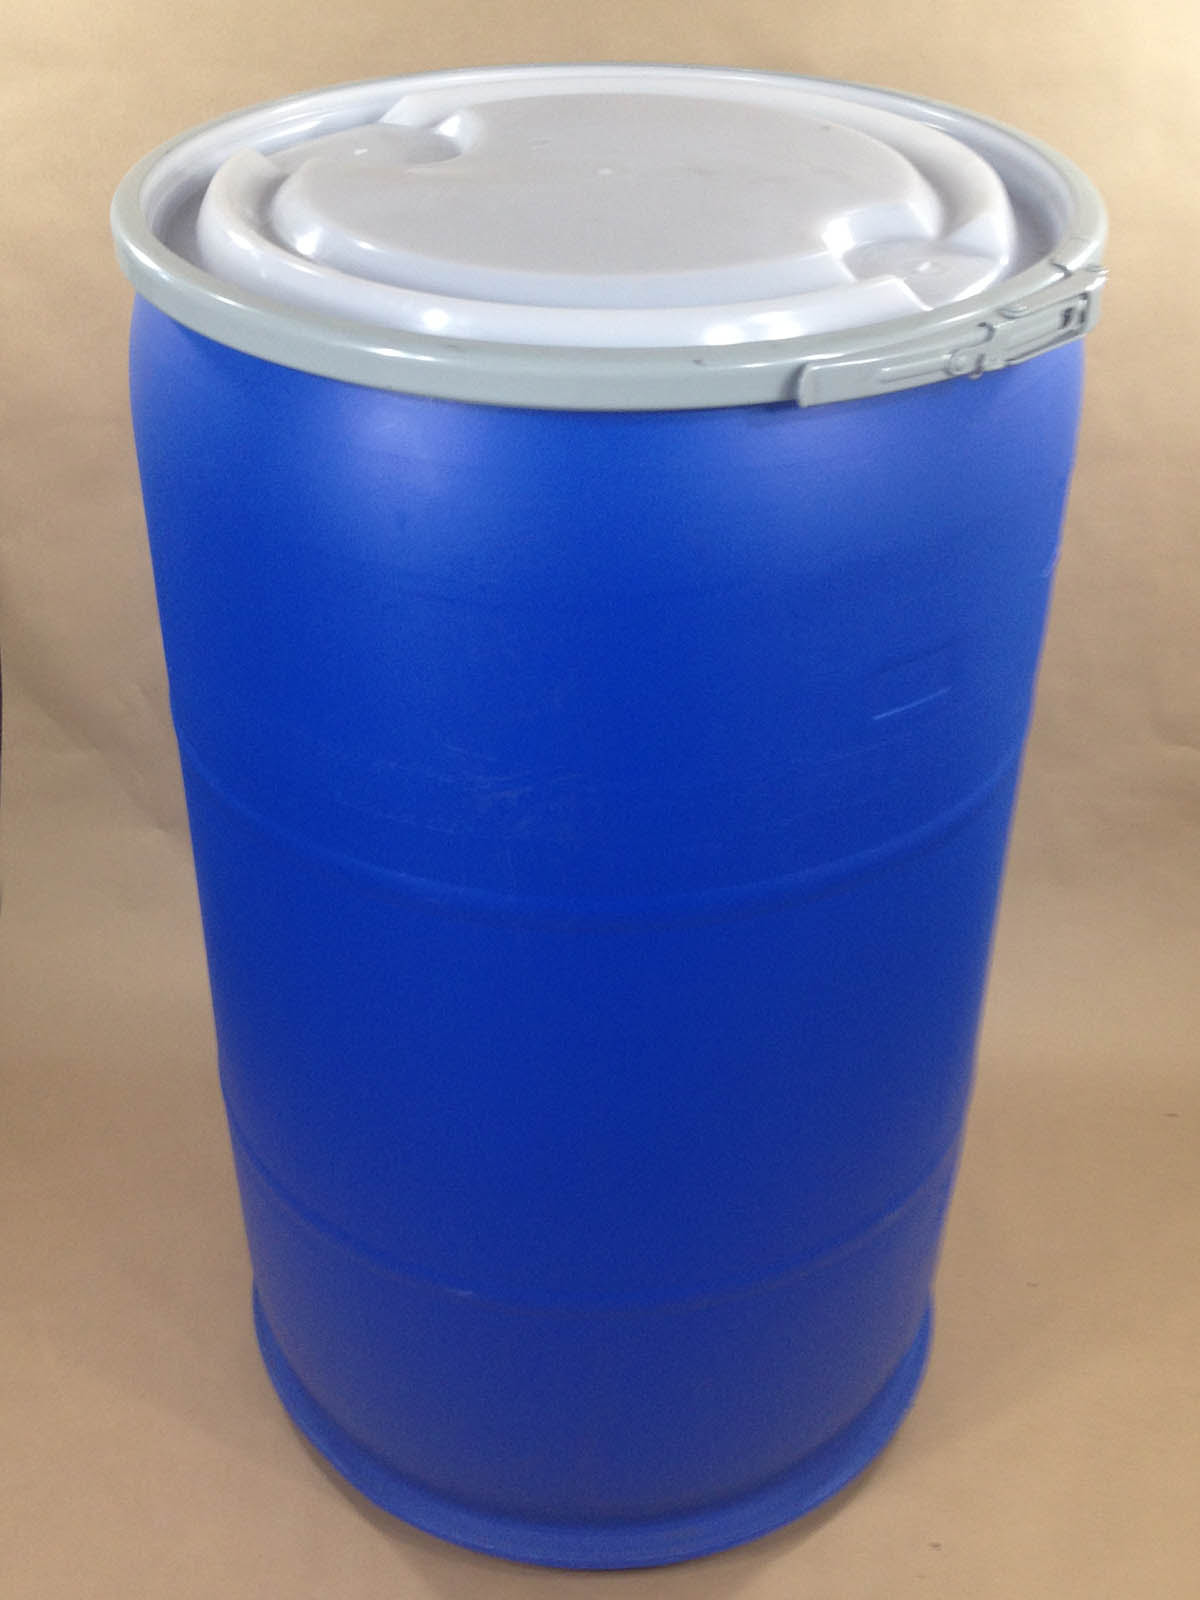 Food grade 55 gallon plastic drum | Yankee Containers ...